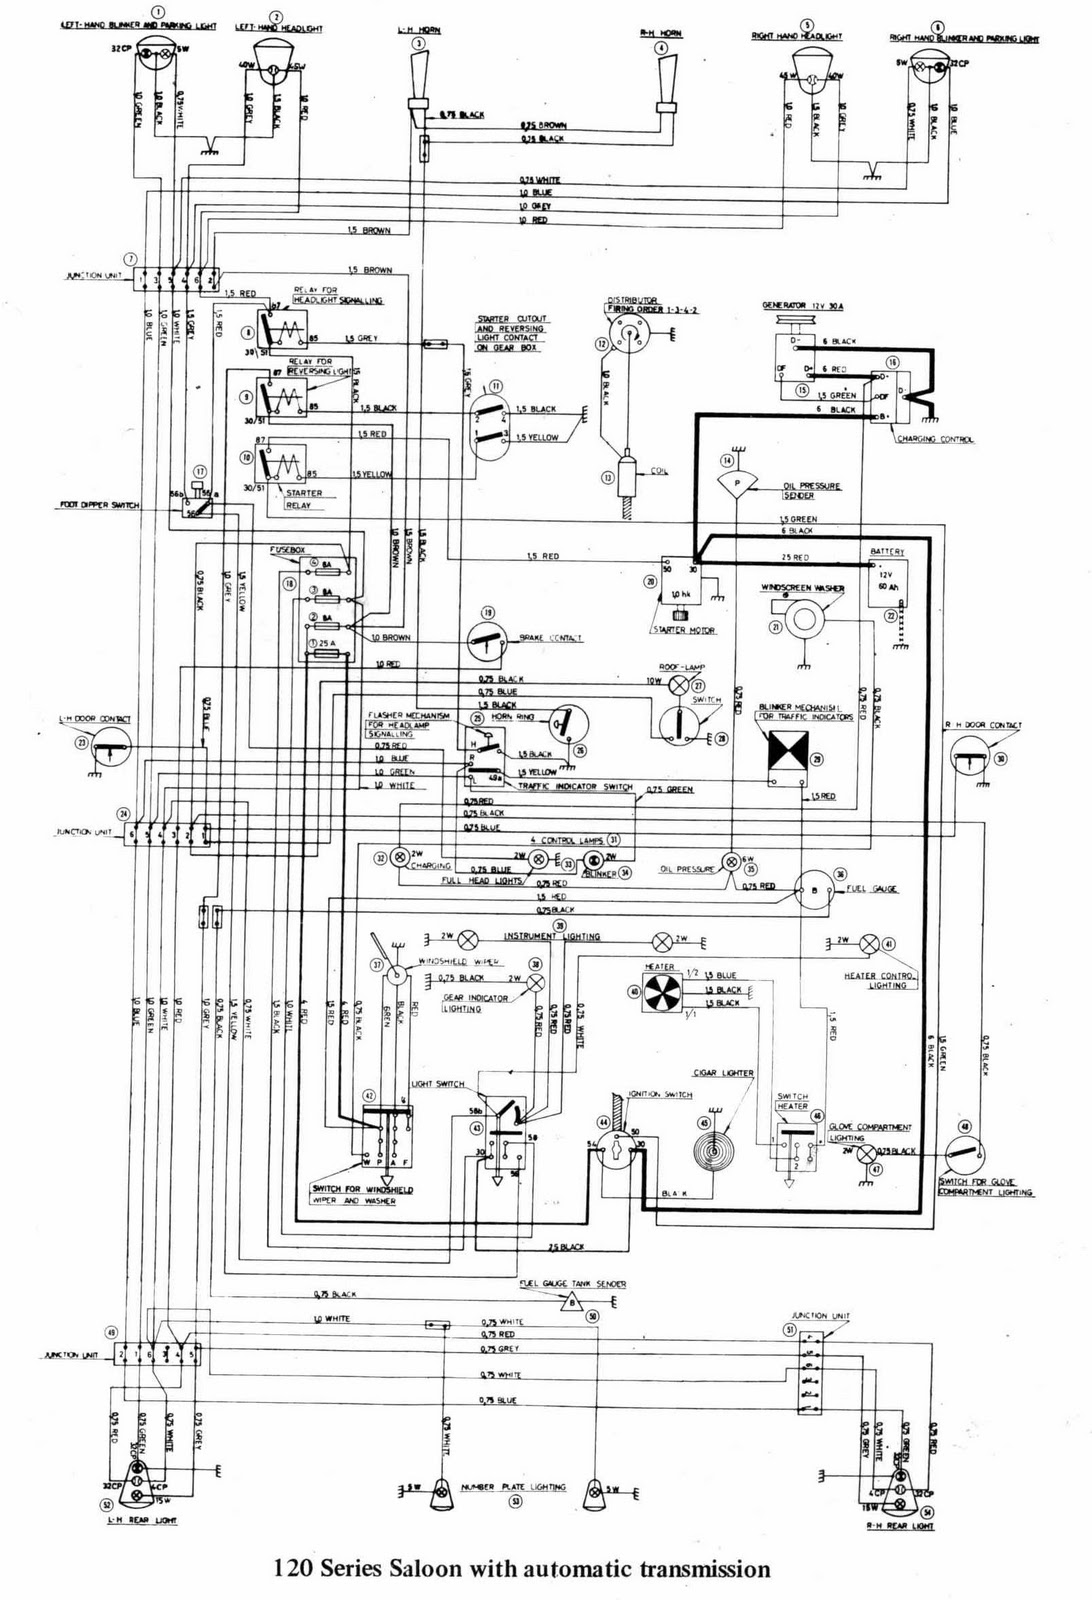 medium resolution of volvo truck wiring wiring diagram data todaysemi volvo truck ecu wiring wiring diagram experts volvo truck